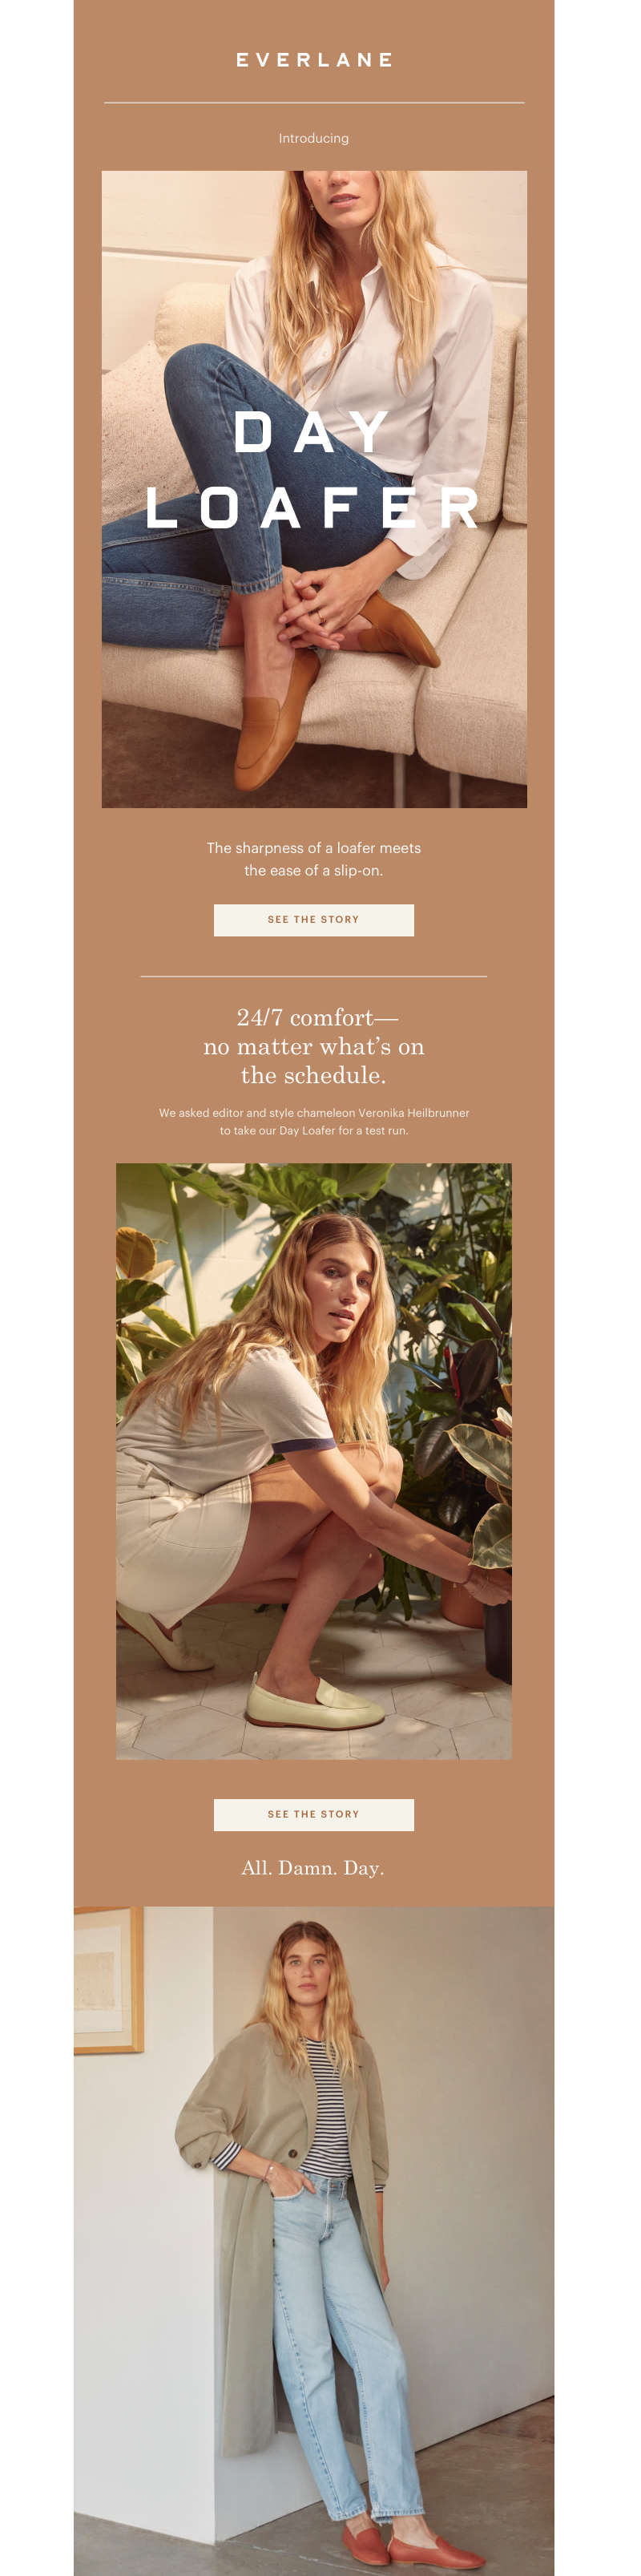 everlane email design 2019